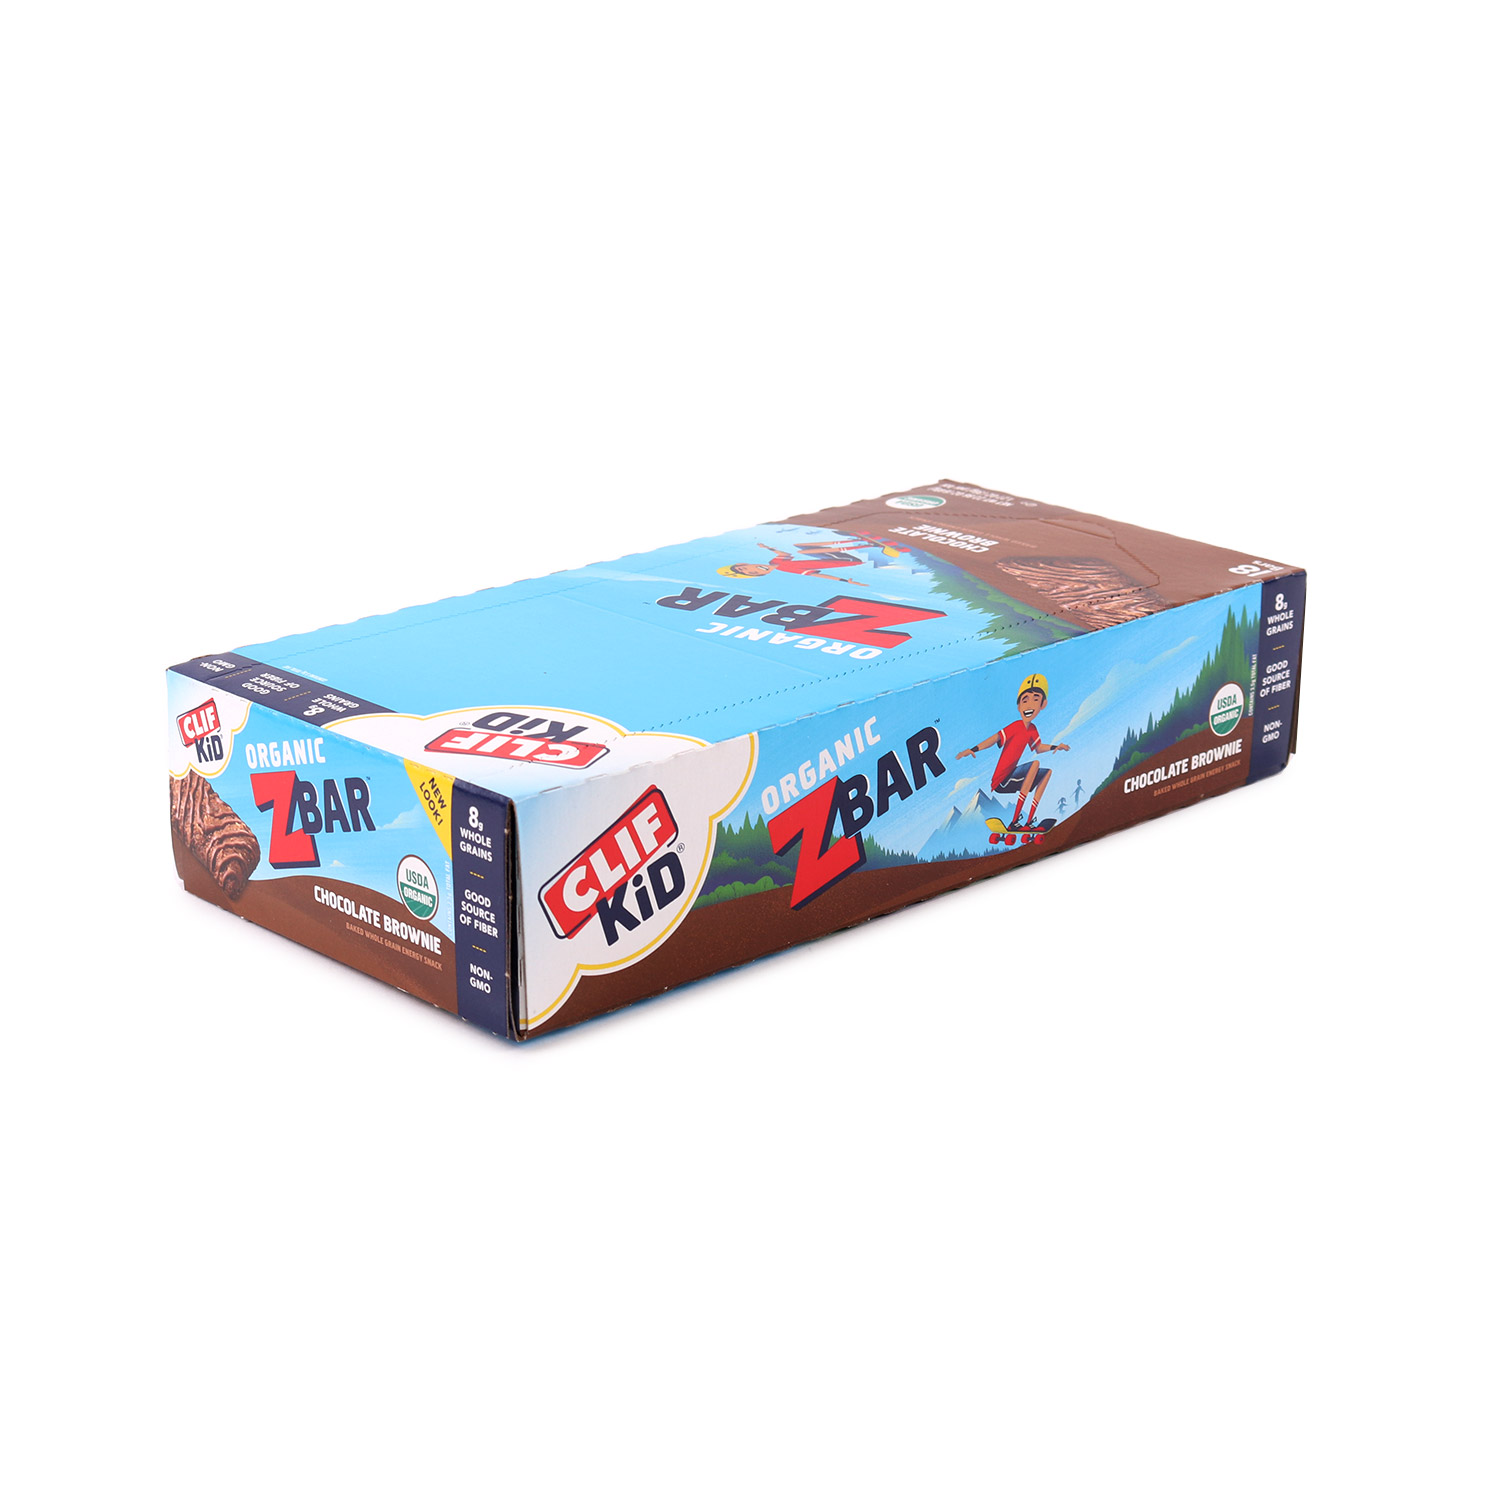 Kid ZBaR Chocolate Brownie-Organic (Case)